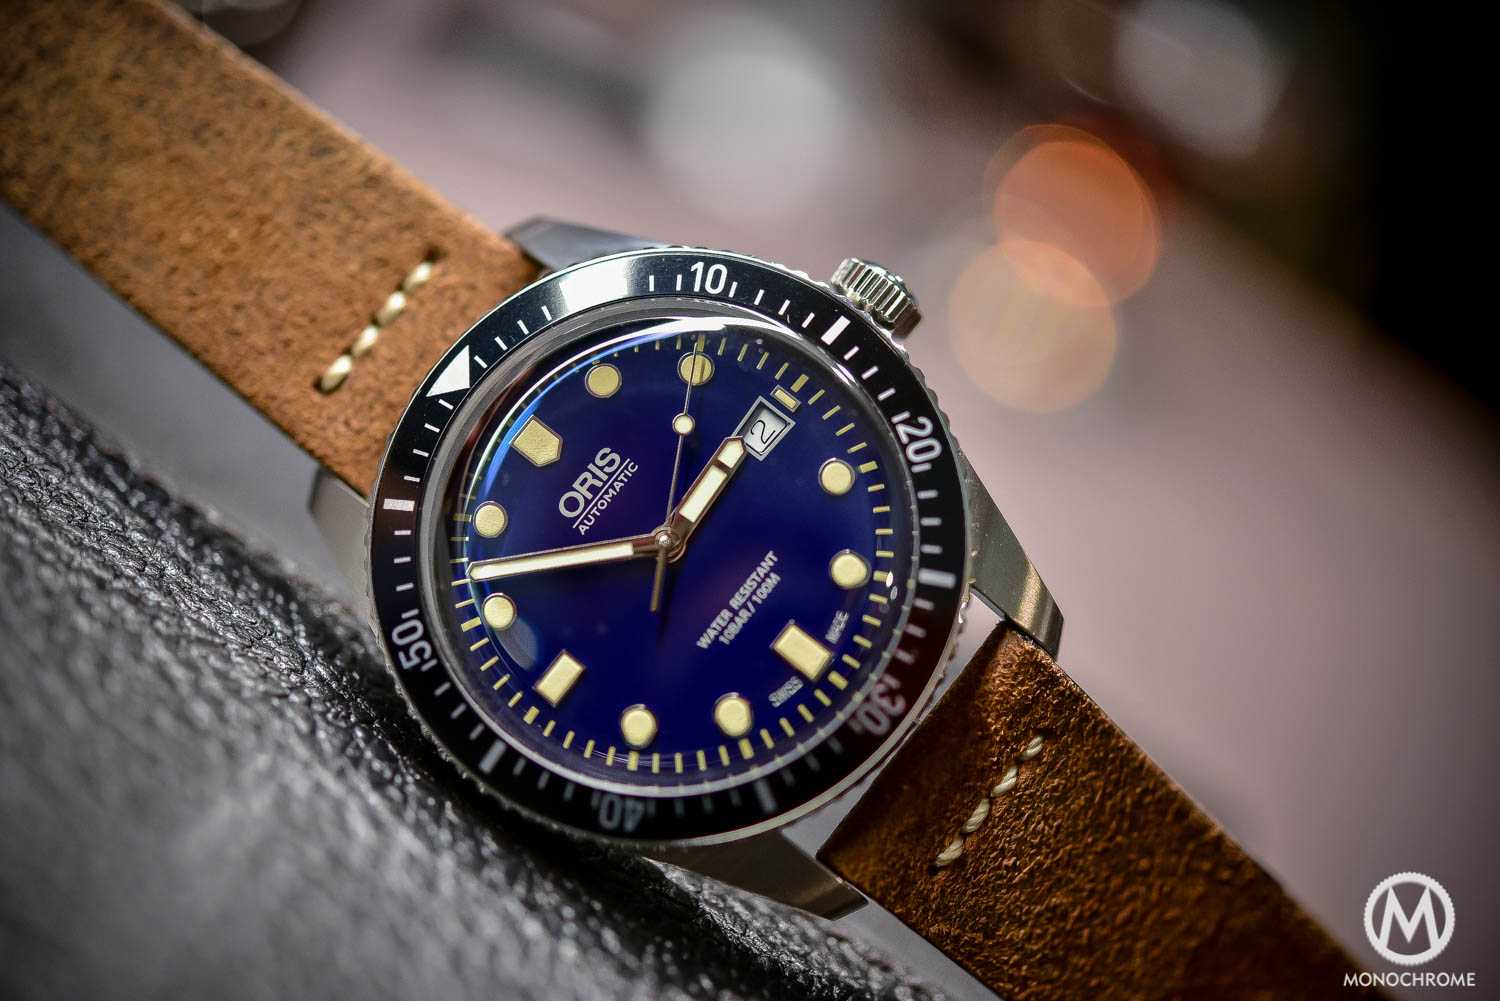 Oris Divers Sixty Five 42mm Blue Dial - Baselworld 2016 - Distressed leather